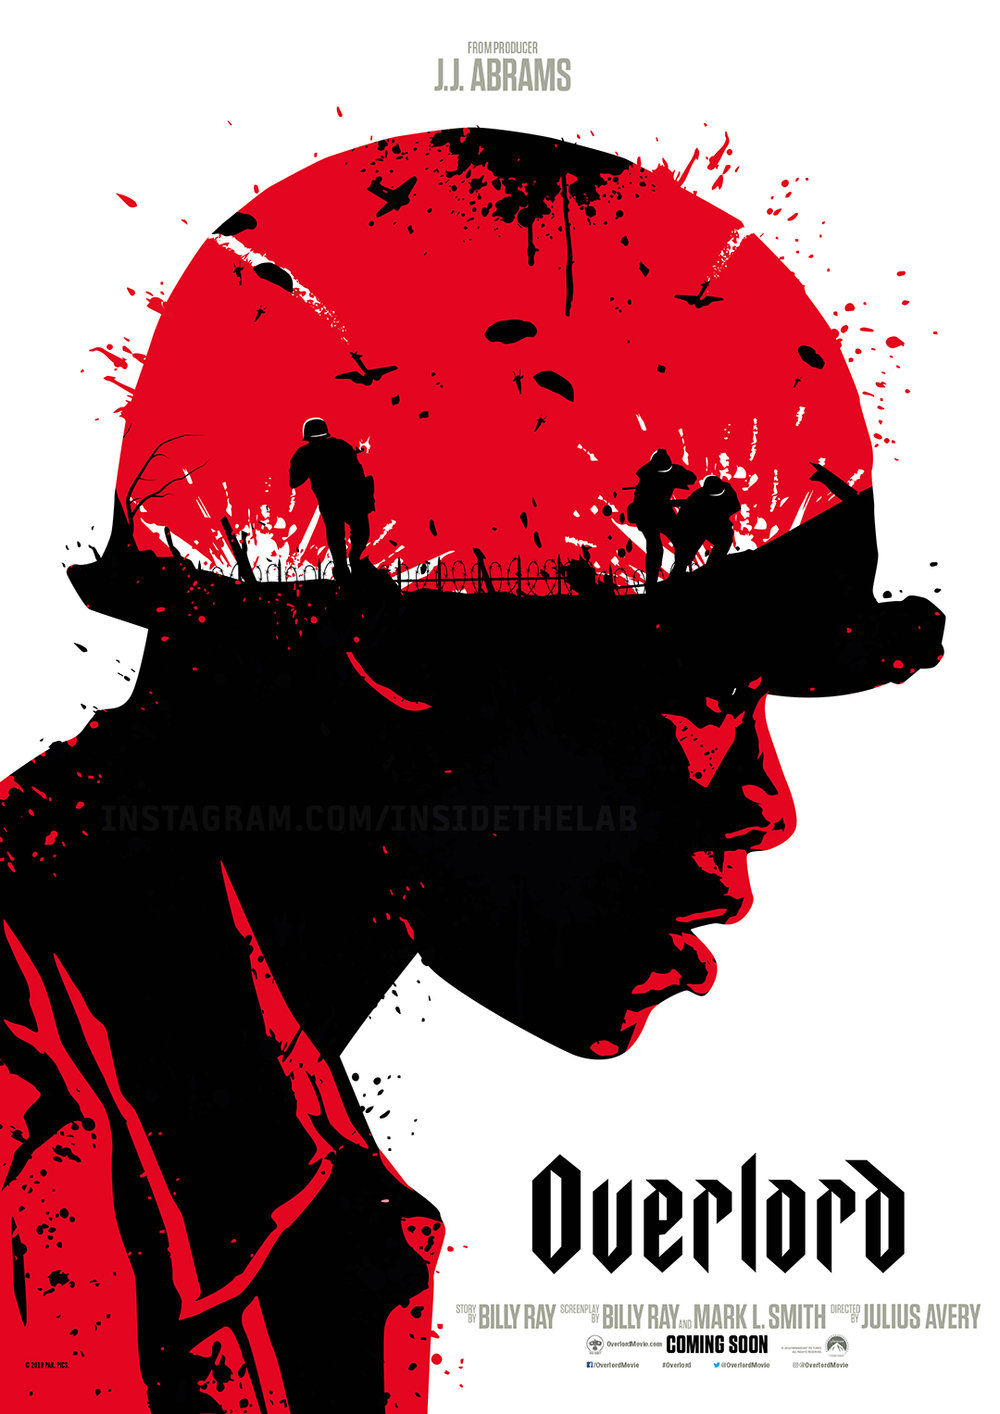 Another movie that's not a masterpiece but is very, very entertaining, Overlord is the gory, action-packed WW2 horror thriller you didn't know you were waiting for. Flawed, but deeply enjoyable. -